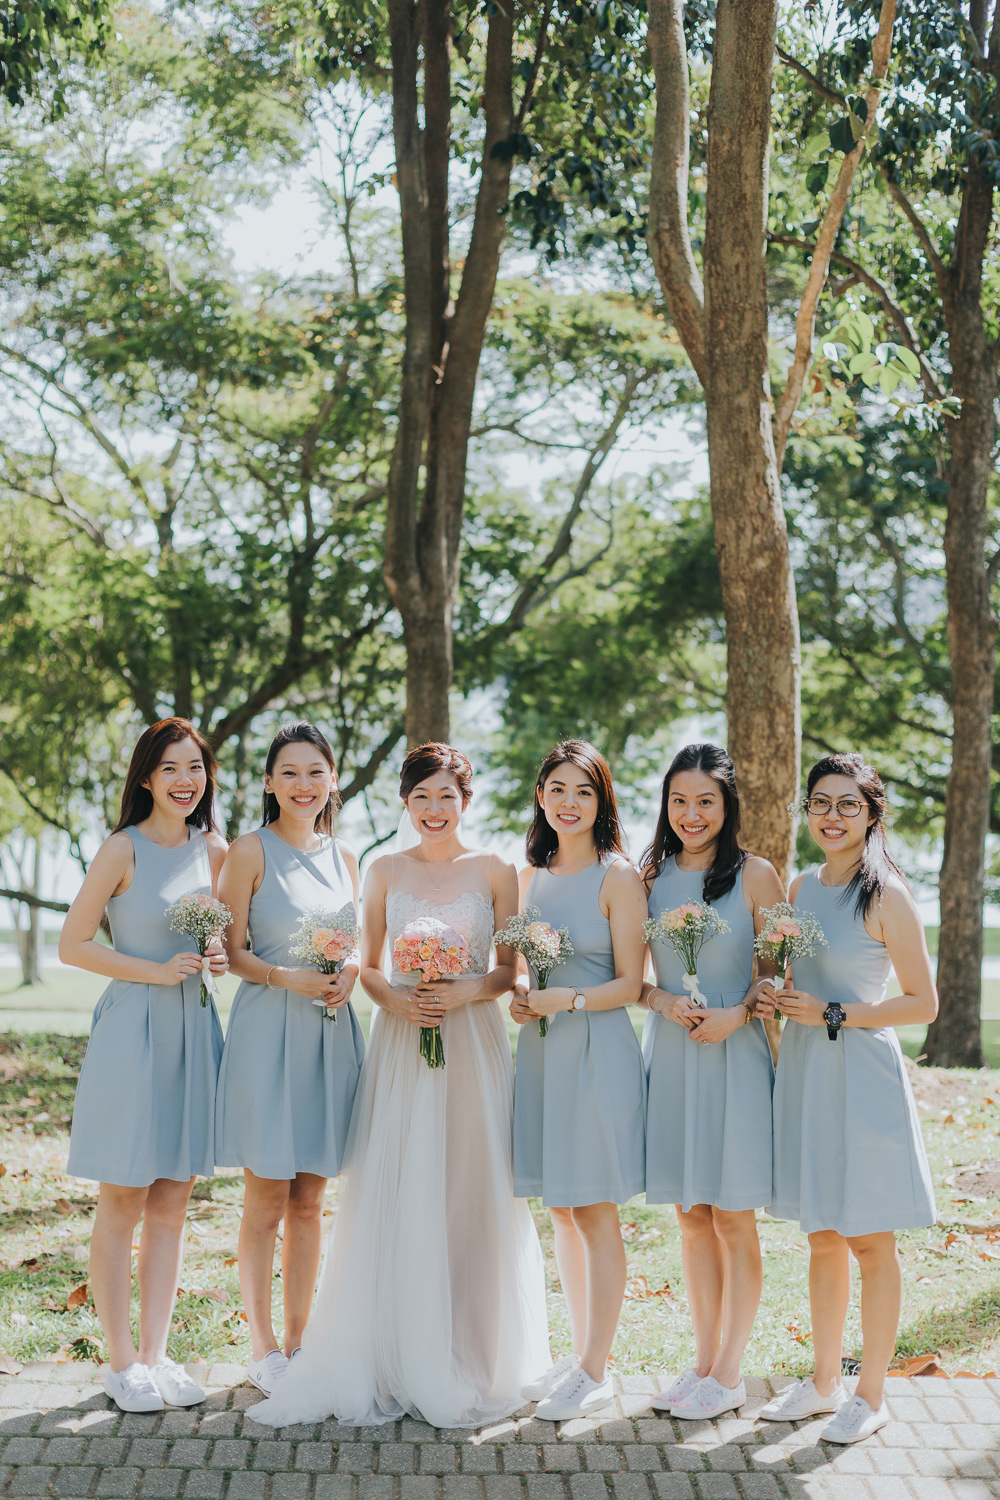 bittersweet photography Singapore wedding photographer jonathan 58